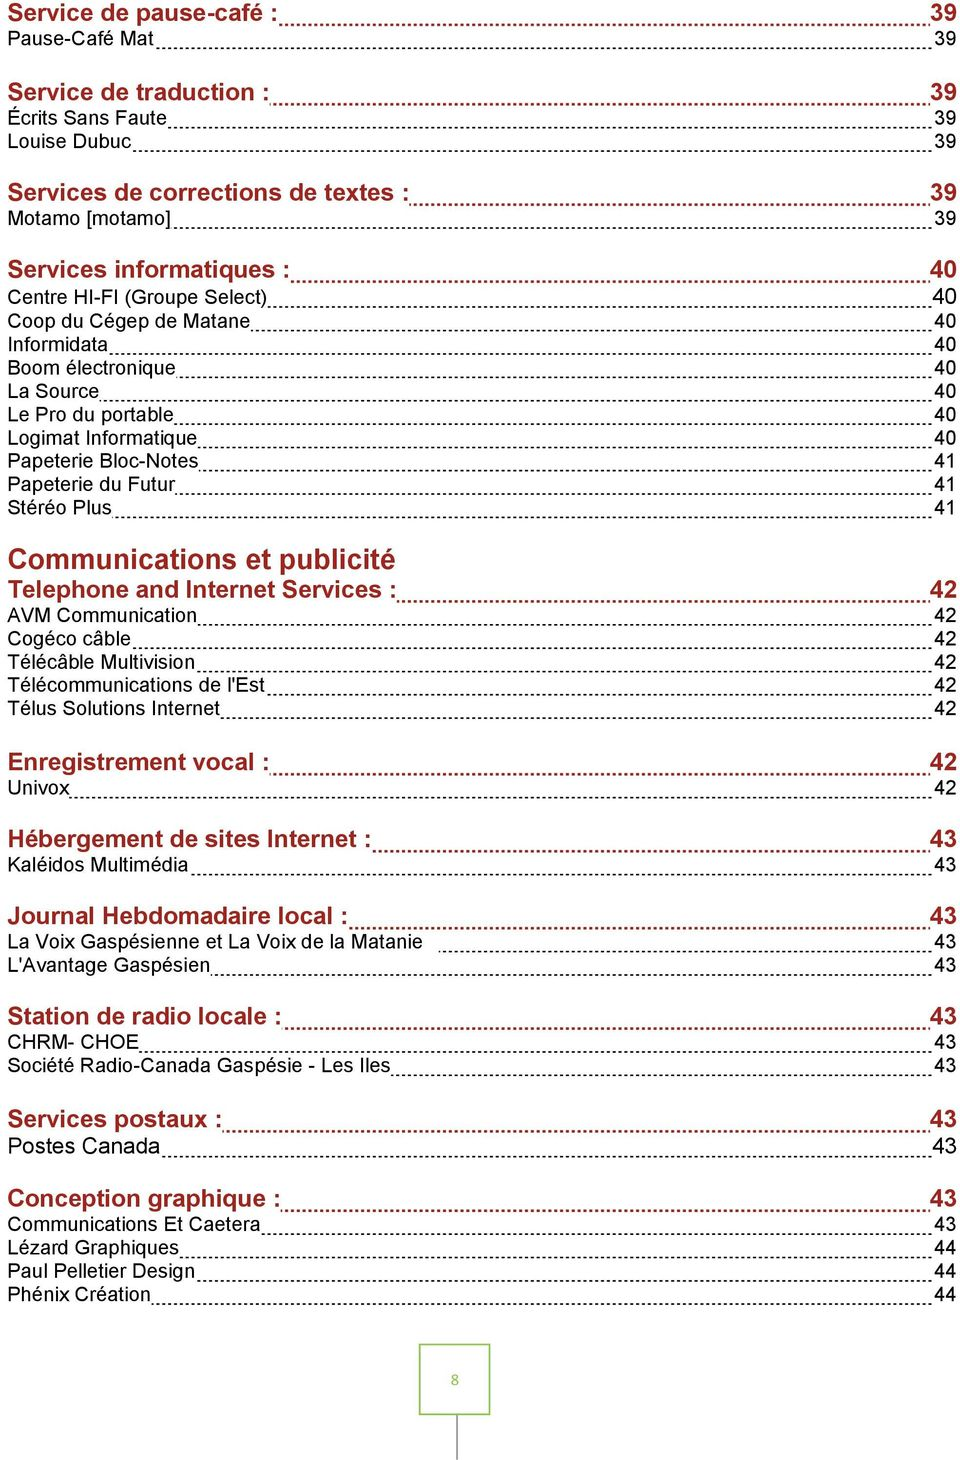 Stéréo Plus 41 Communications et publicité Telephone and Internet Services : 42 AVM Communication 42 Cogéco câble 42 Télécâble Multivision 42 Télécommunications de l'est 42 Télus Solutions Internet